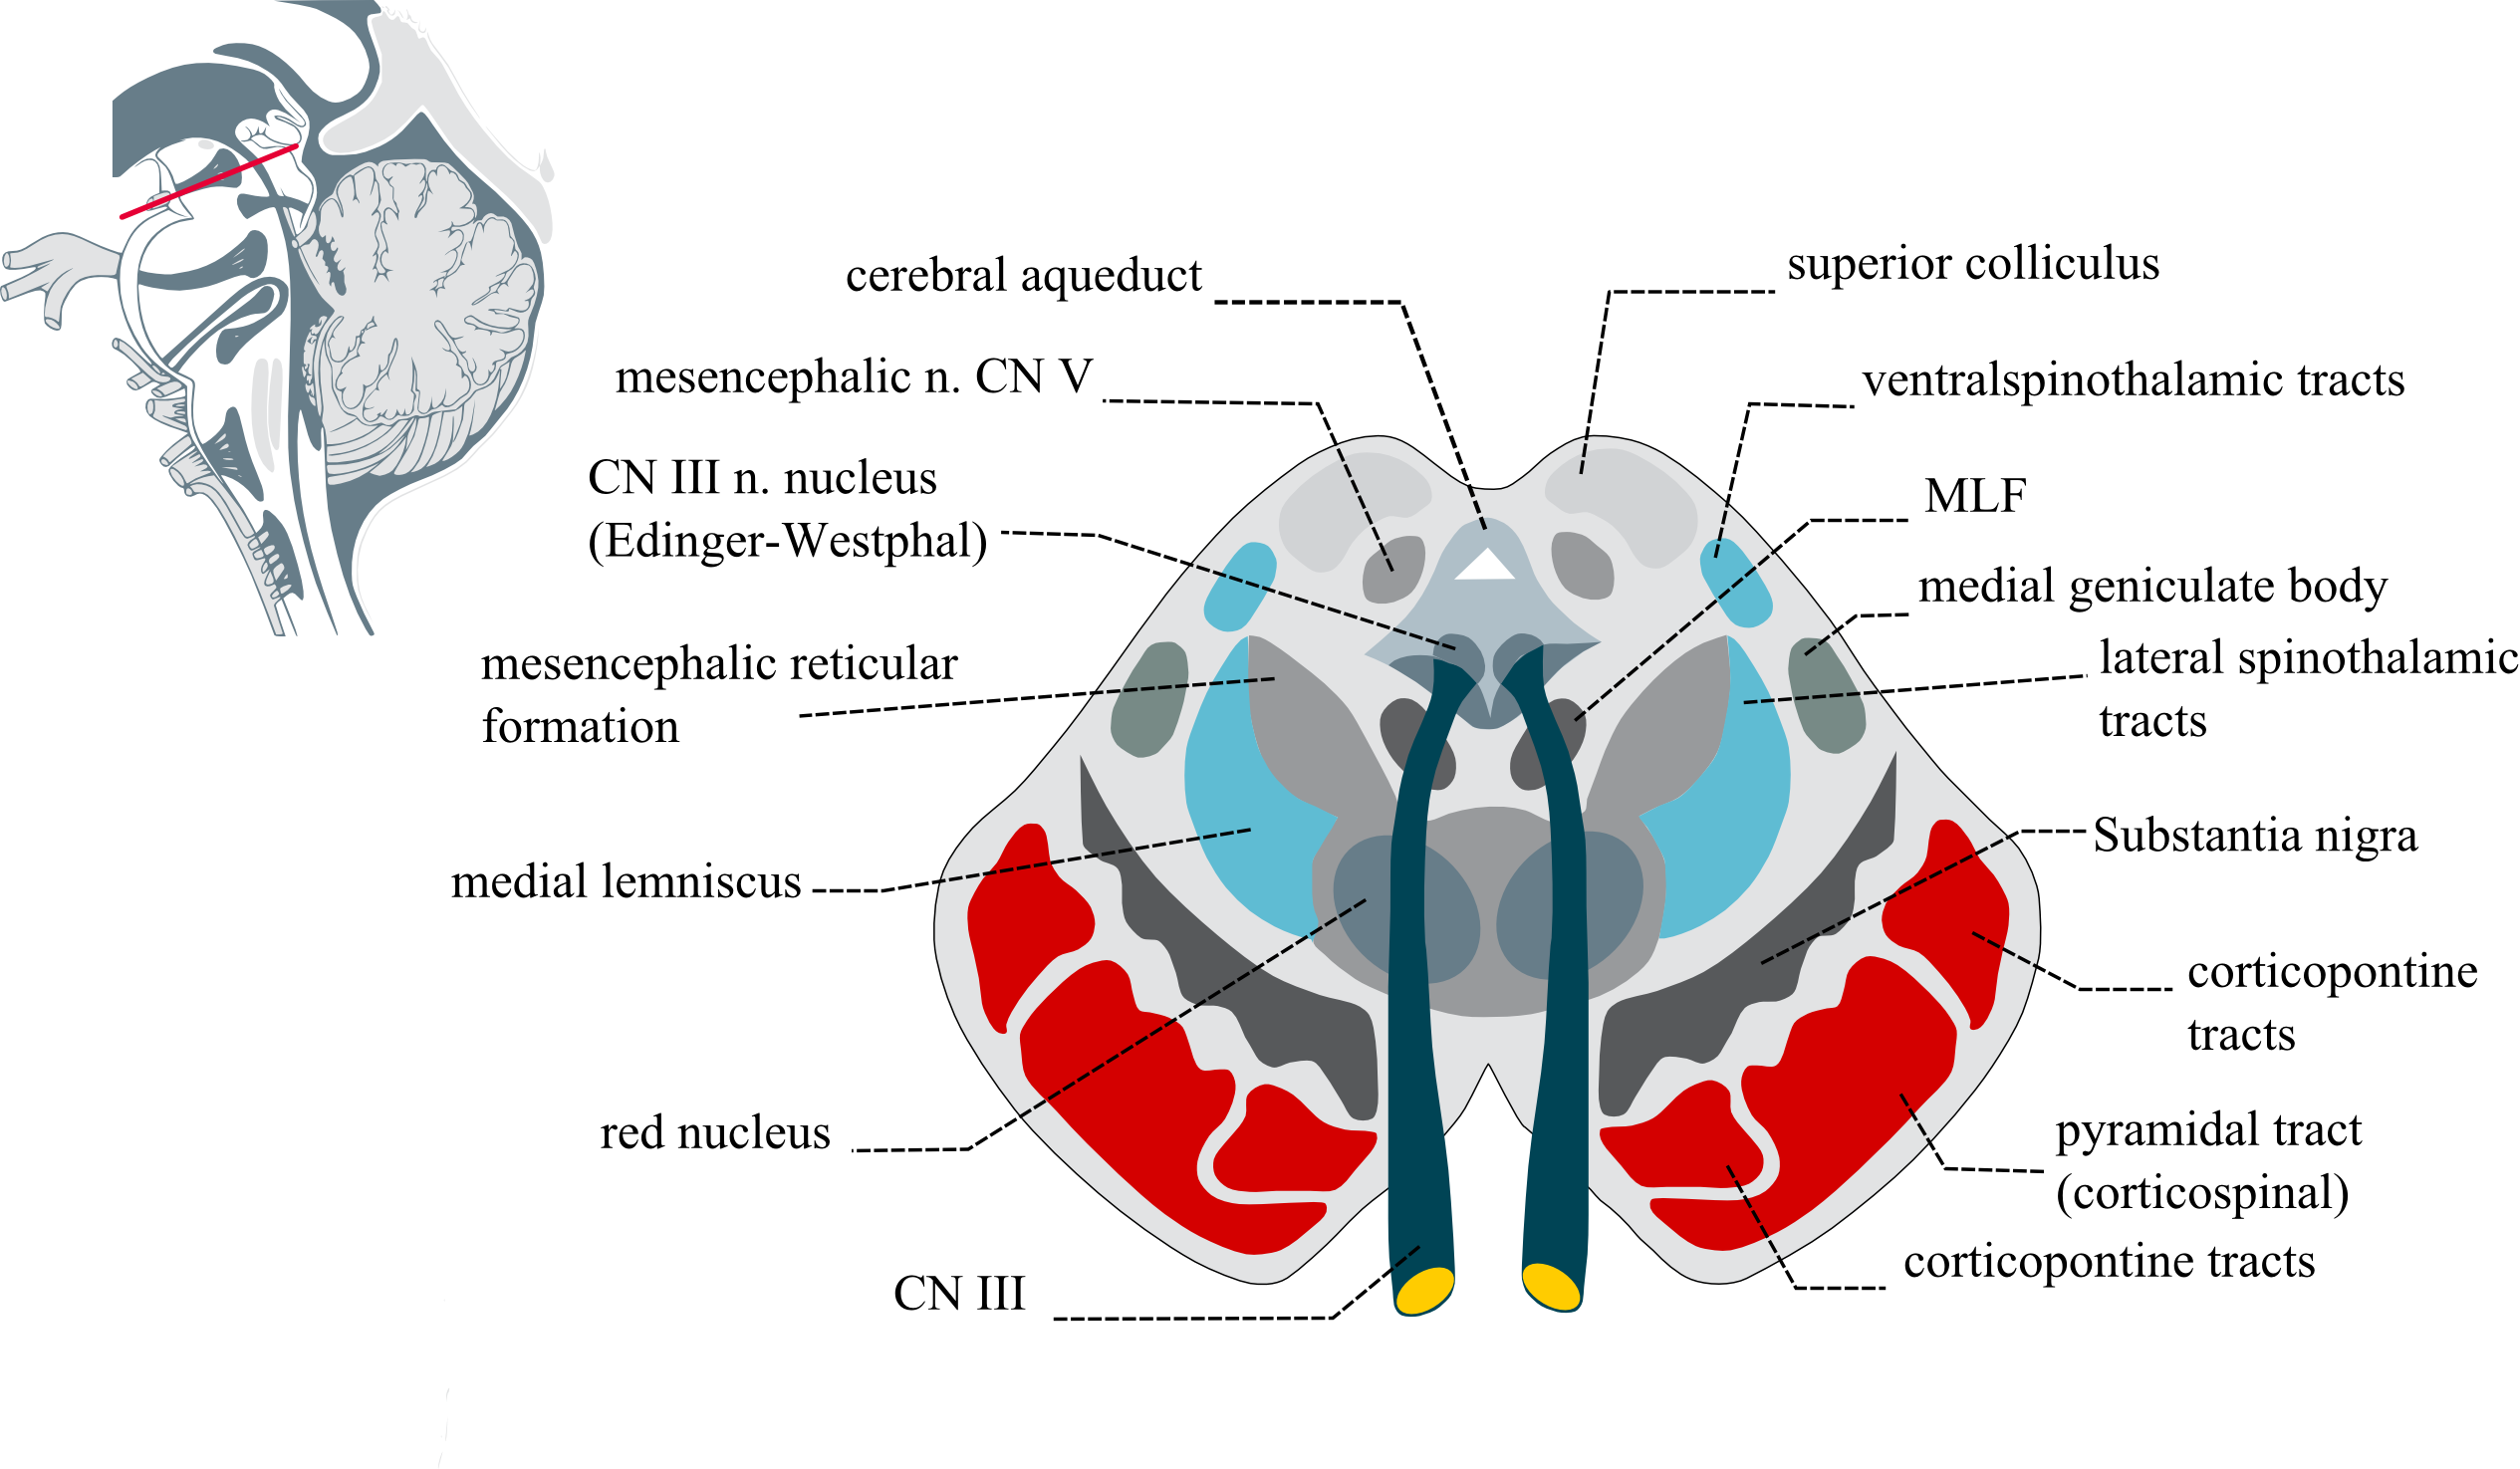 File:Midbraincrosssection.png - Wikimedia Commons